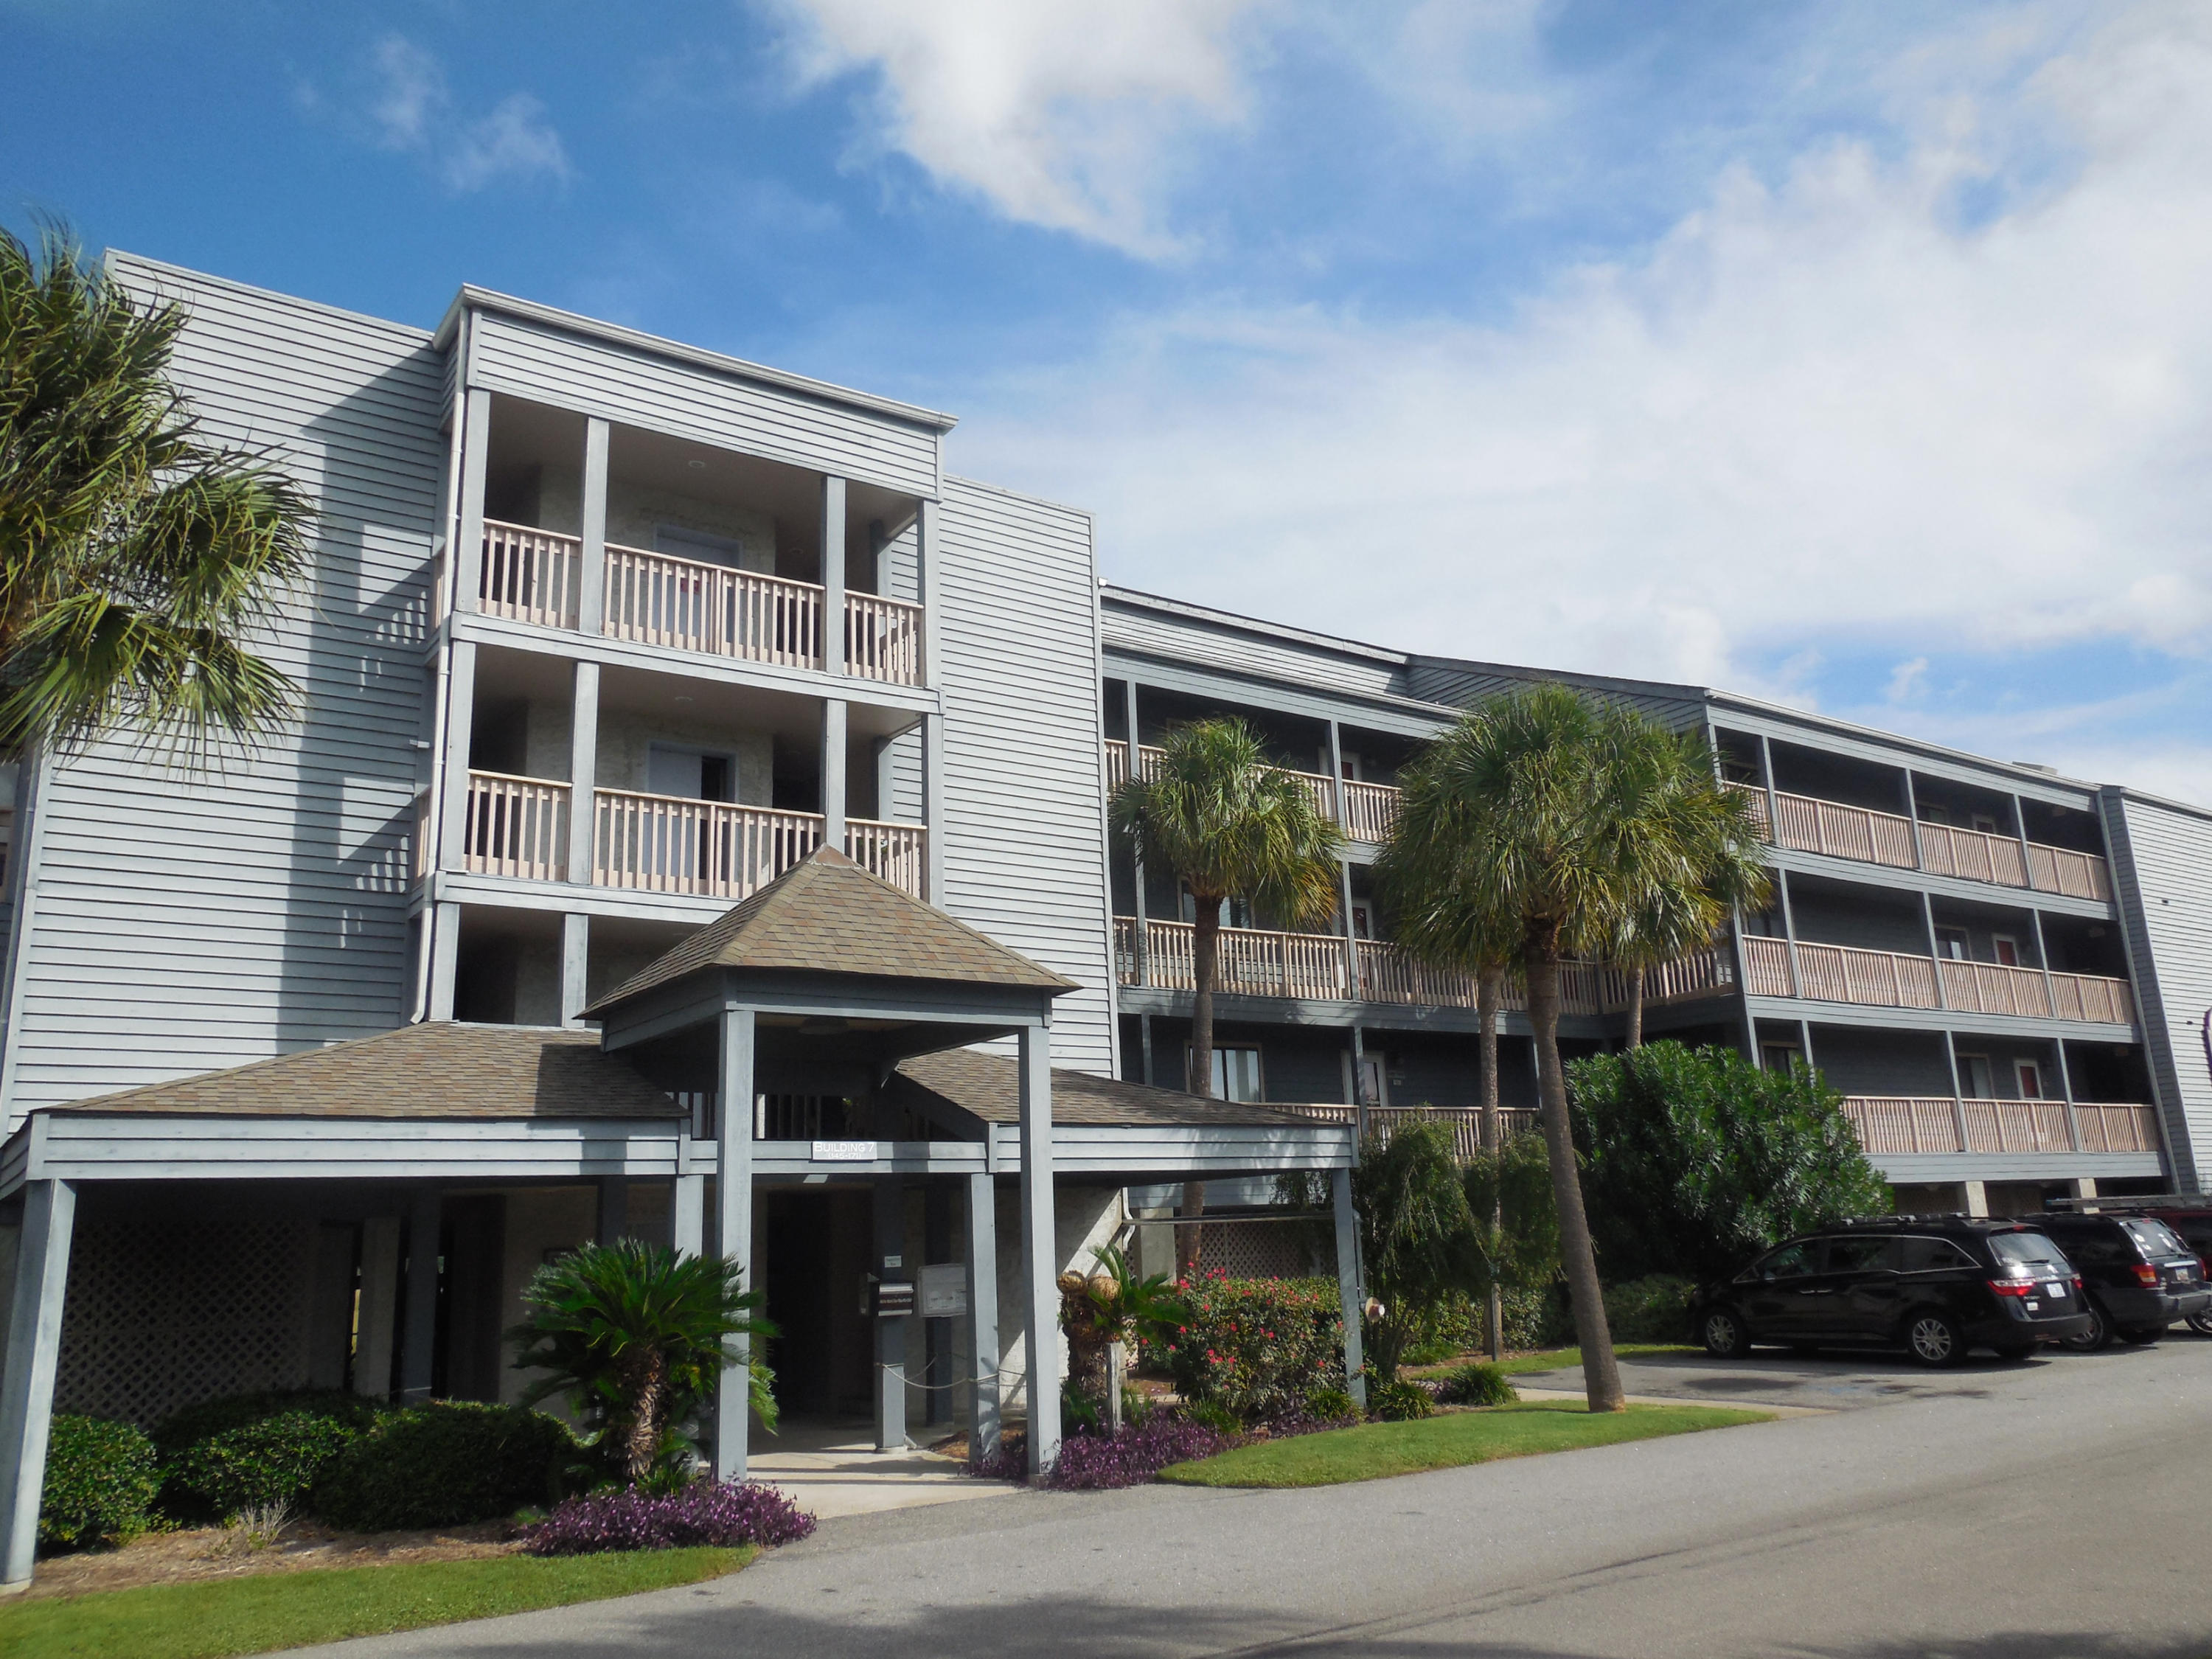 Marshview Villas Homes For Sale - 164 Marshview, Folly Beach, SC - 11